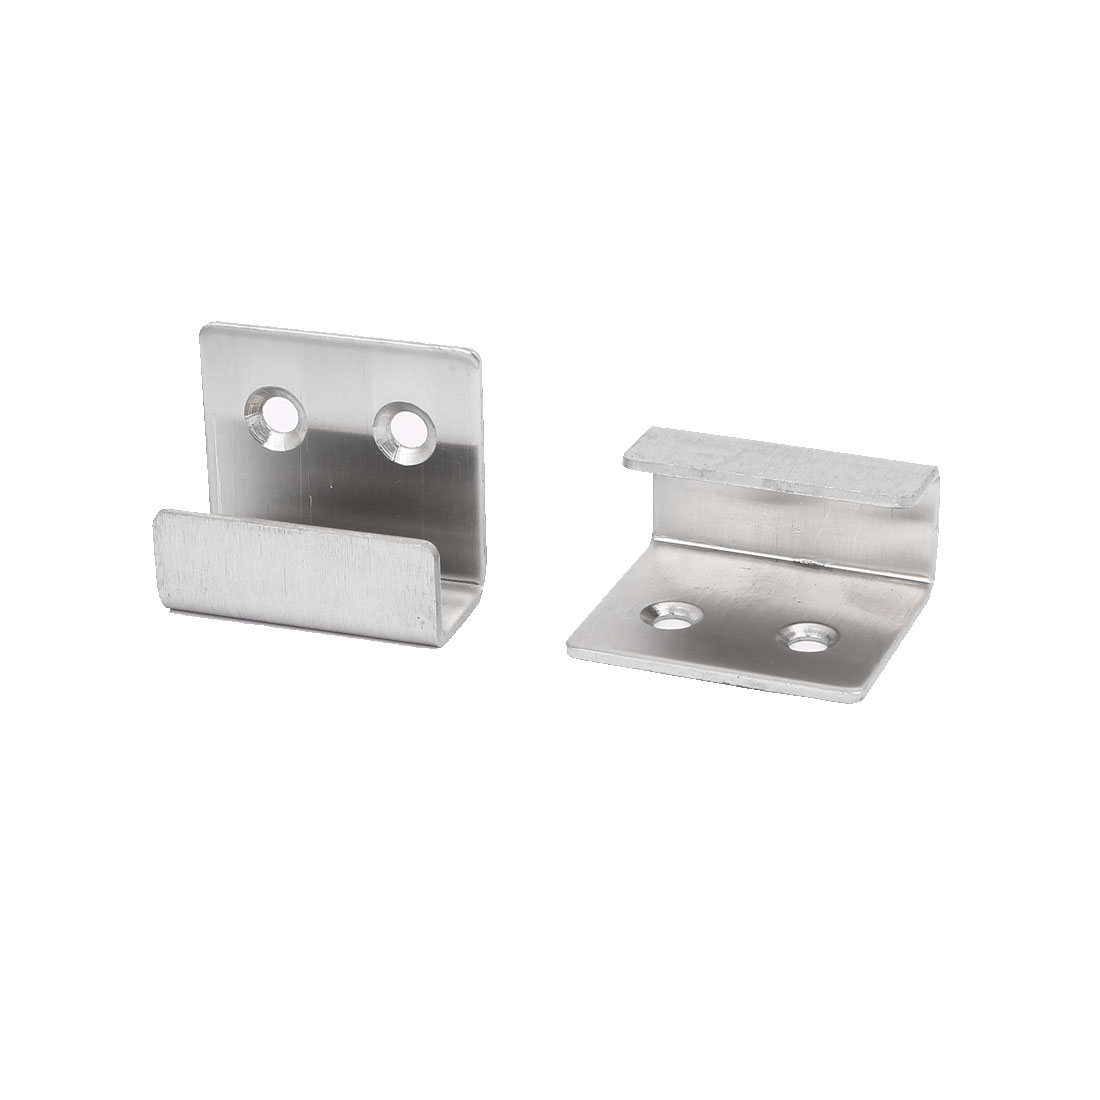 Ceramic Tile Display Stainless Steel Wall Hanger Fastener Silver Tone 2pcs